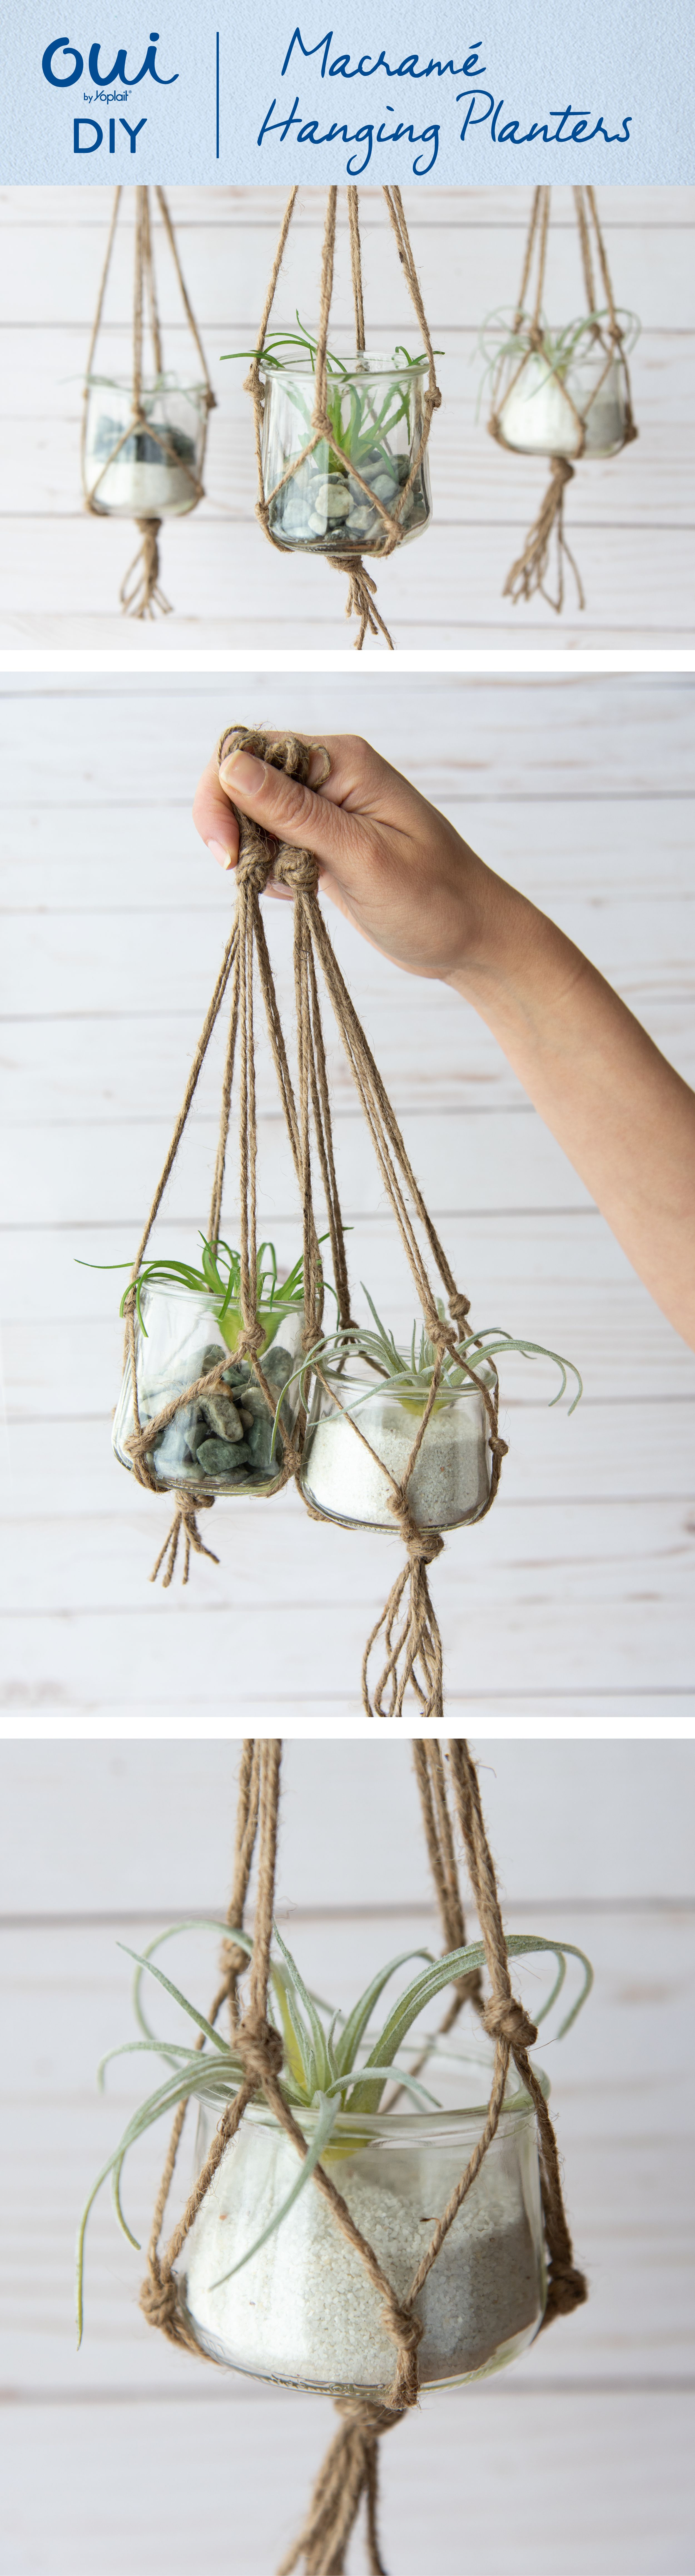 Macrame Hanging Planters are our favorite DIY for Oui glass pots! Cut four pieces of twine to the same length, loop in half and tie a knot to create a handle. Split twine into four sections of two strings, tie knots between each section 3